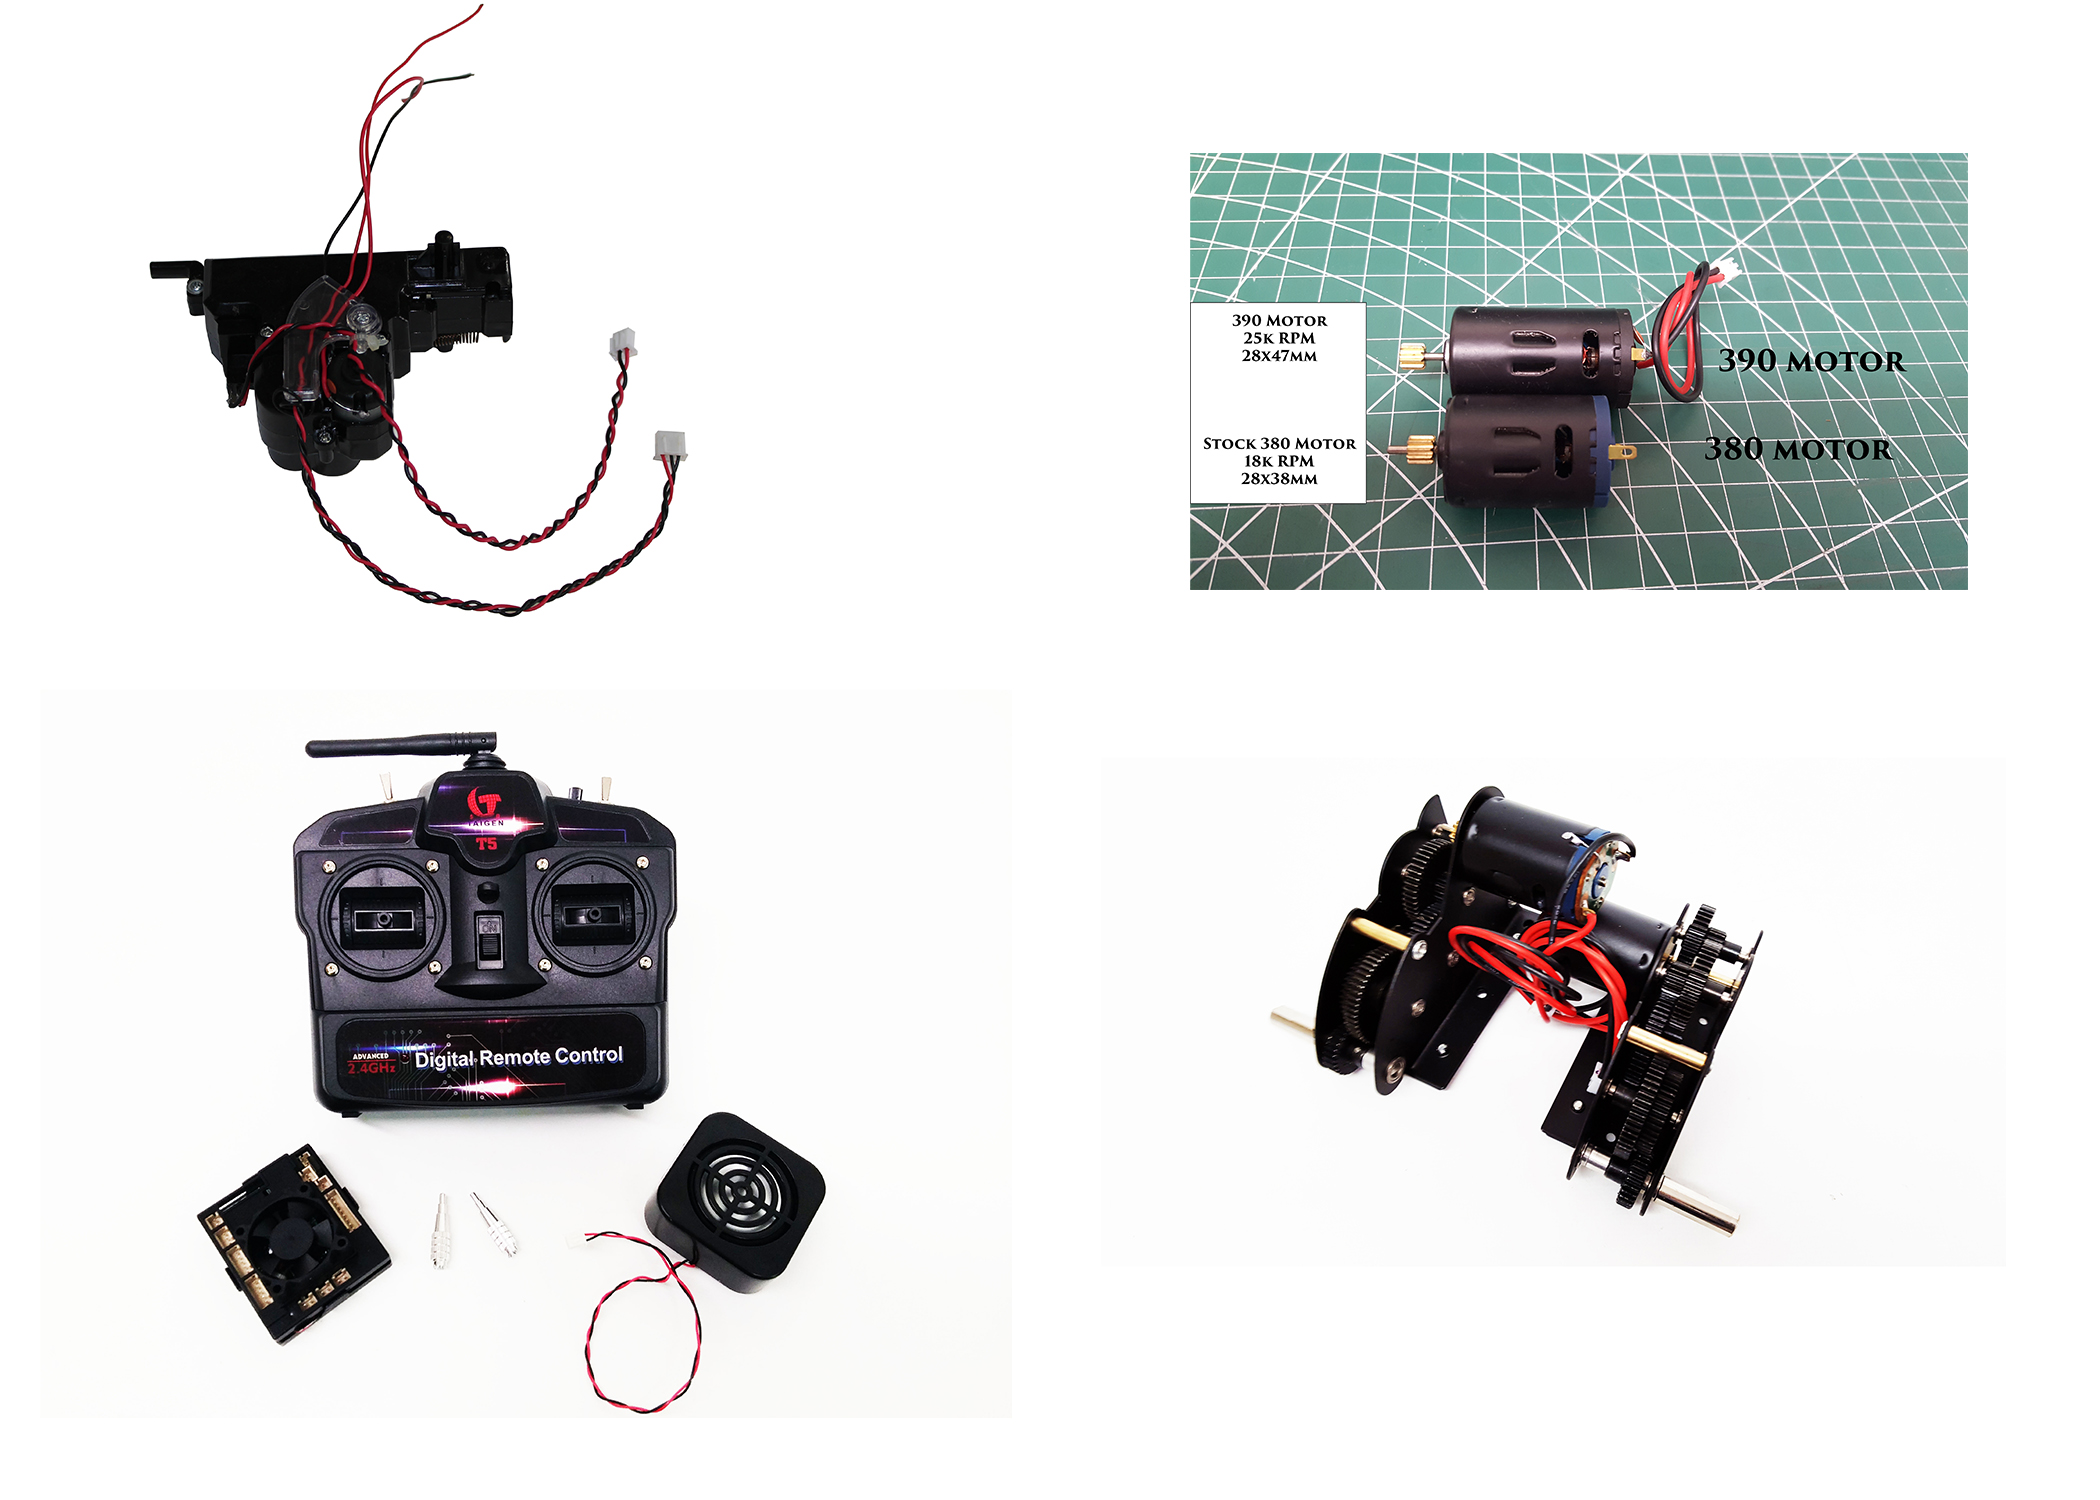 Electronics & Gearboxes